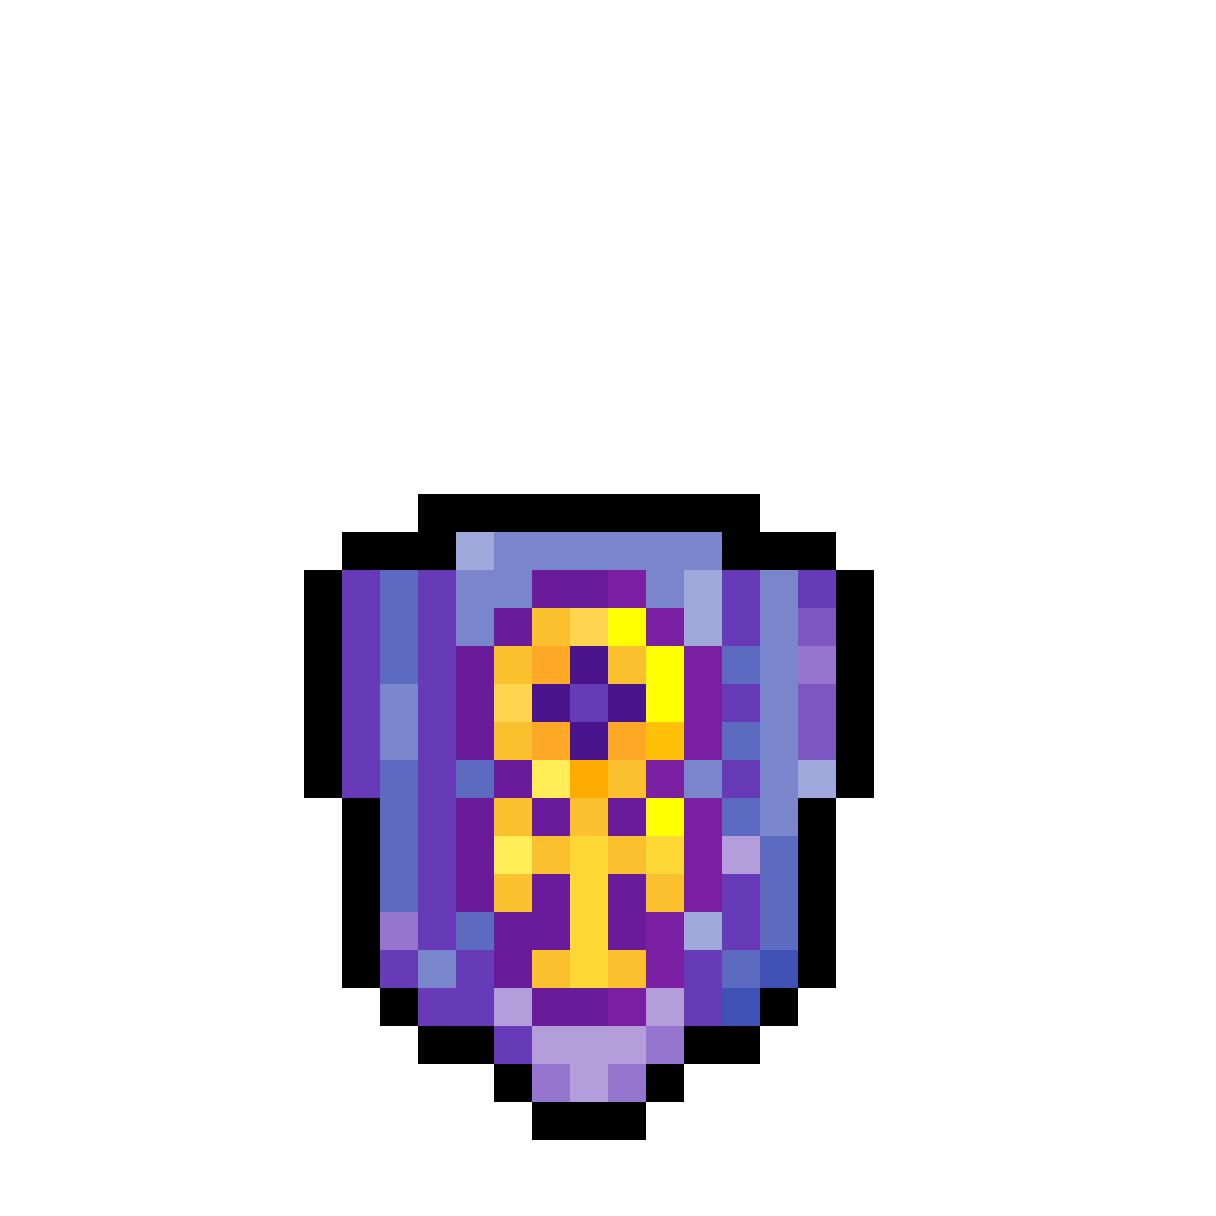 Pixilart Terraria Ankh Shield By Syamsumadyan The nazar is by far the hardest ankh charm item i tried to get. pixilart terraria ankh shield by